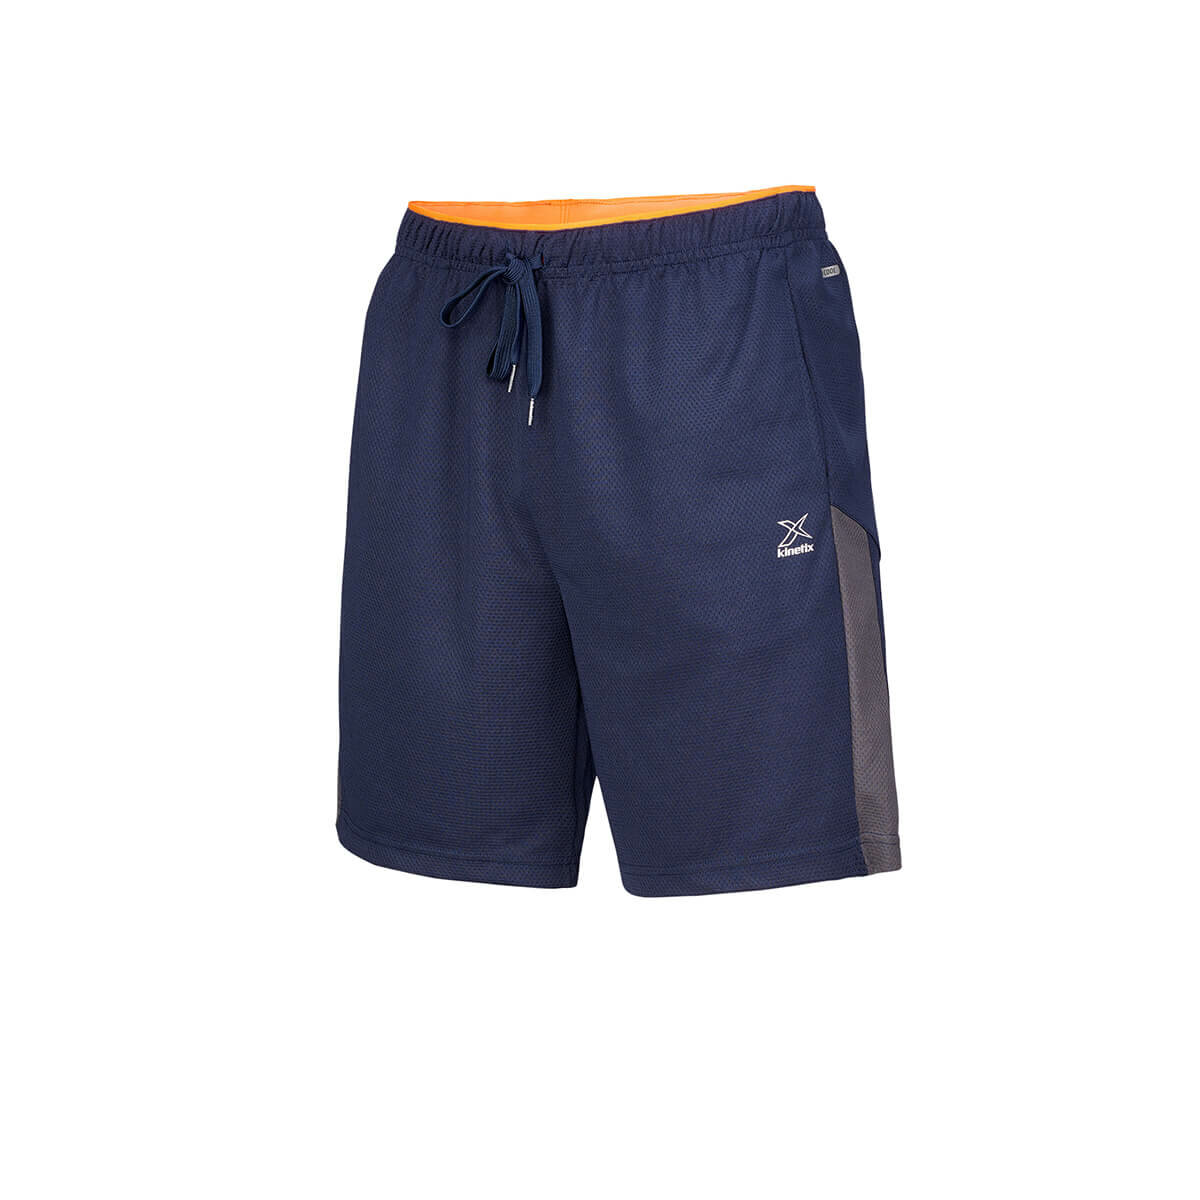 FLO CLOUDS SHORT Navy Blue Men 'S Shorts KINETIX